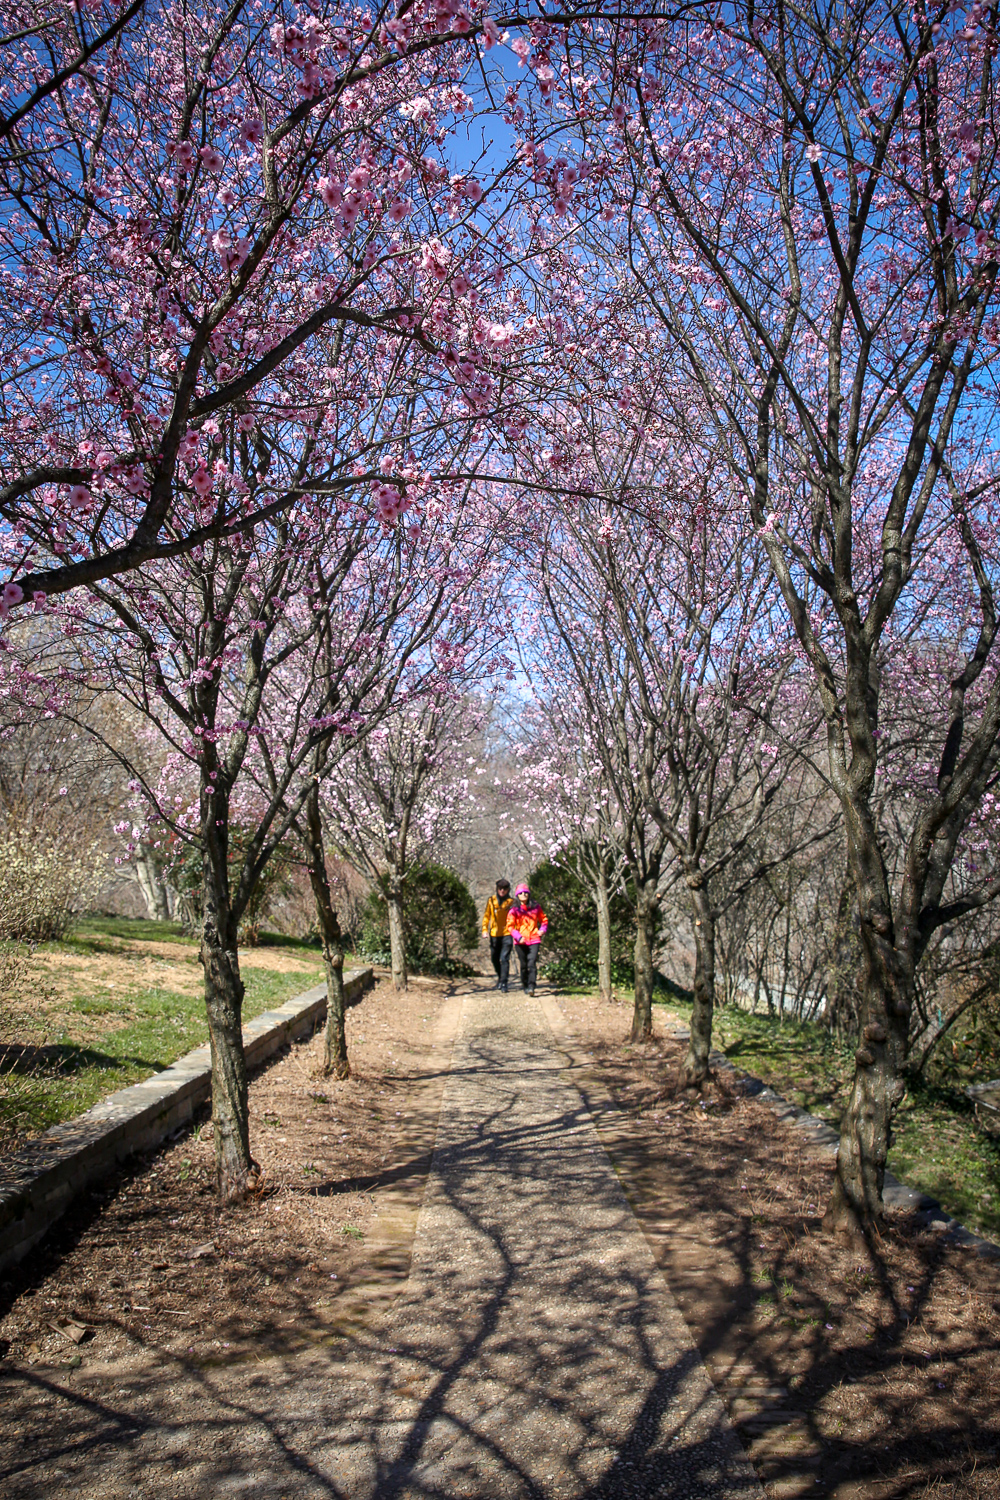 Dumbarton Oaks expansive gardens feature plenty of blooming cherry trees and the $10 cost of admission tends to drive away the bulk of tourists. However, the gorgeous rows of blooms make the price well worth it. Plus, you can explore the rest of the manicured gardens and well-curated museum. (Amanda Andrade-Rhoades/DC Refined)